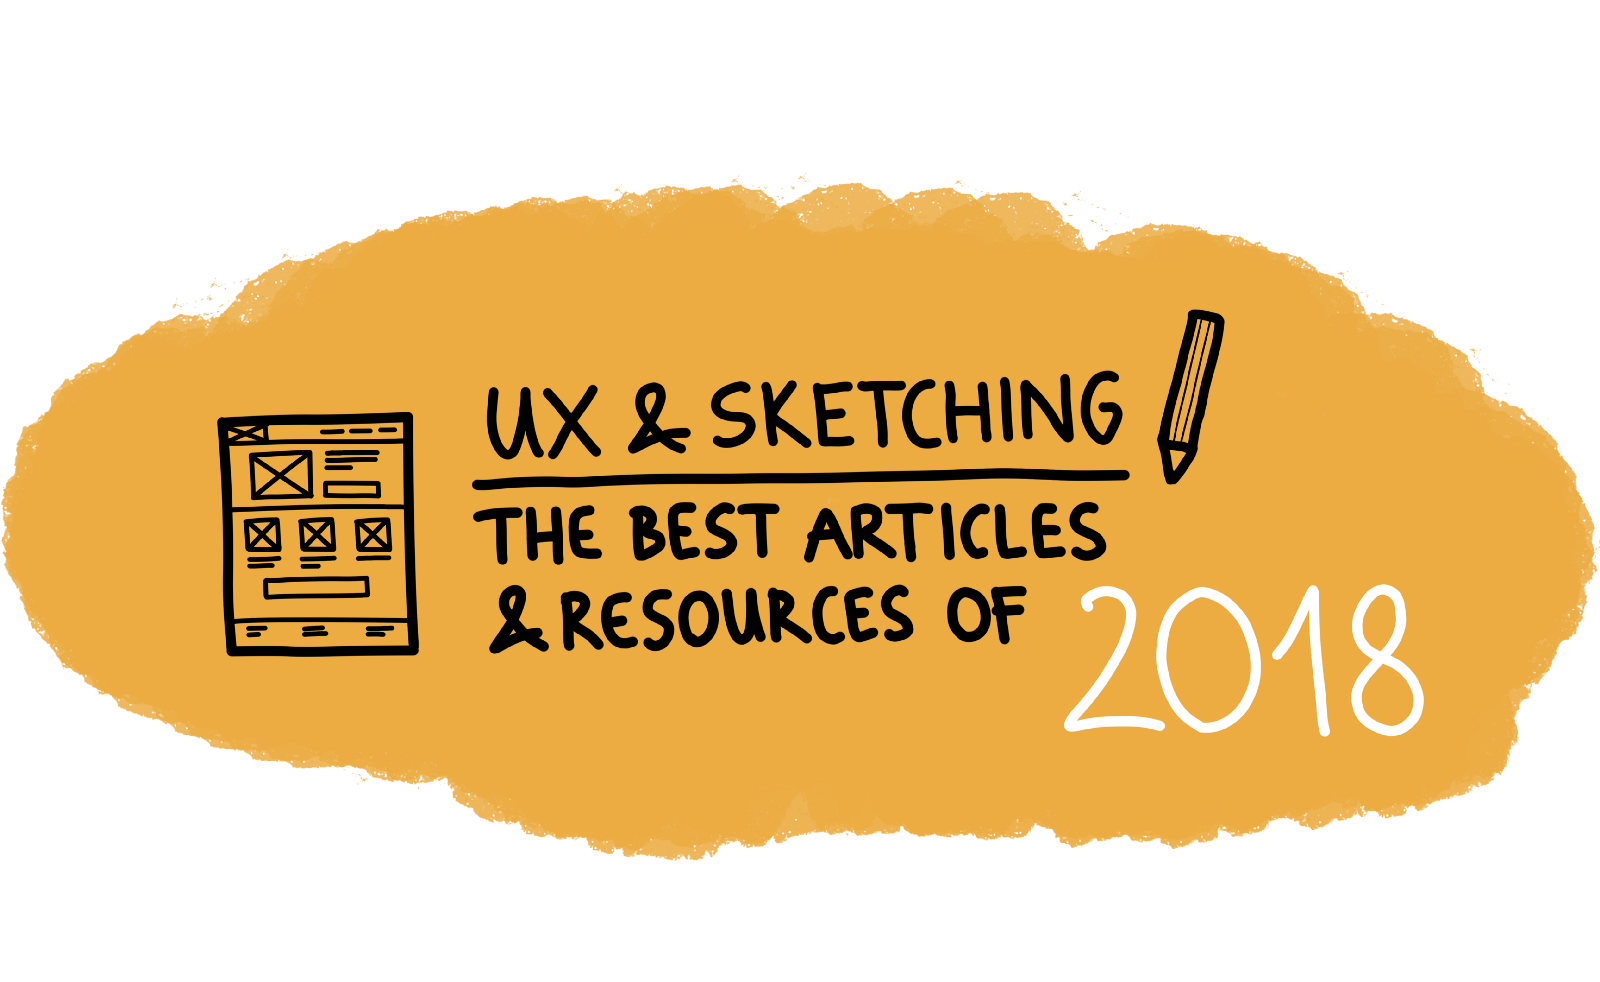 UX & Sketching: the best articles and resources of 2018